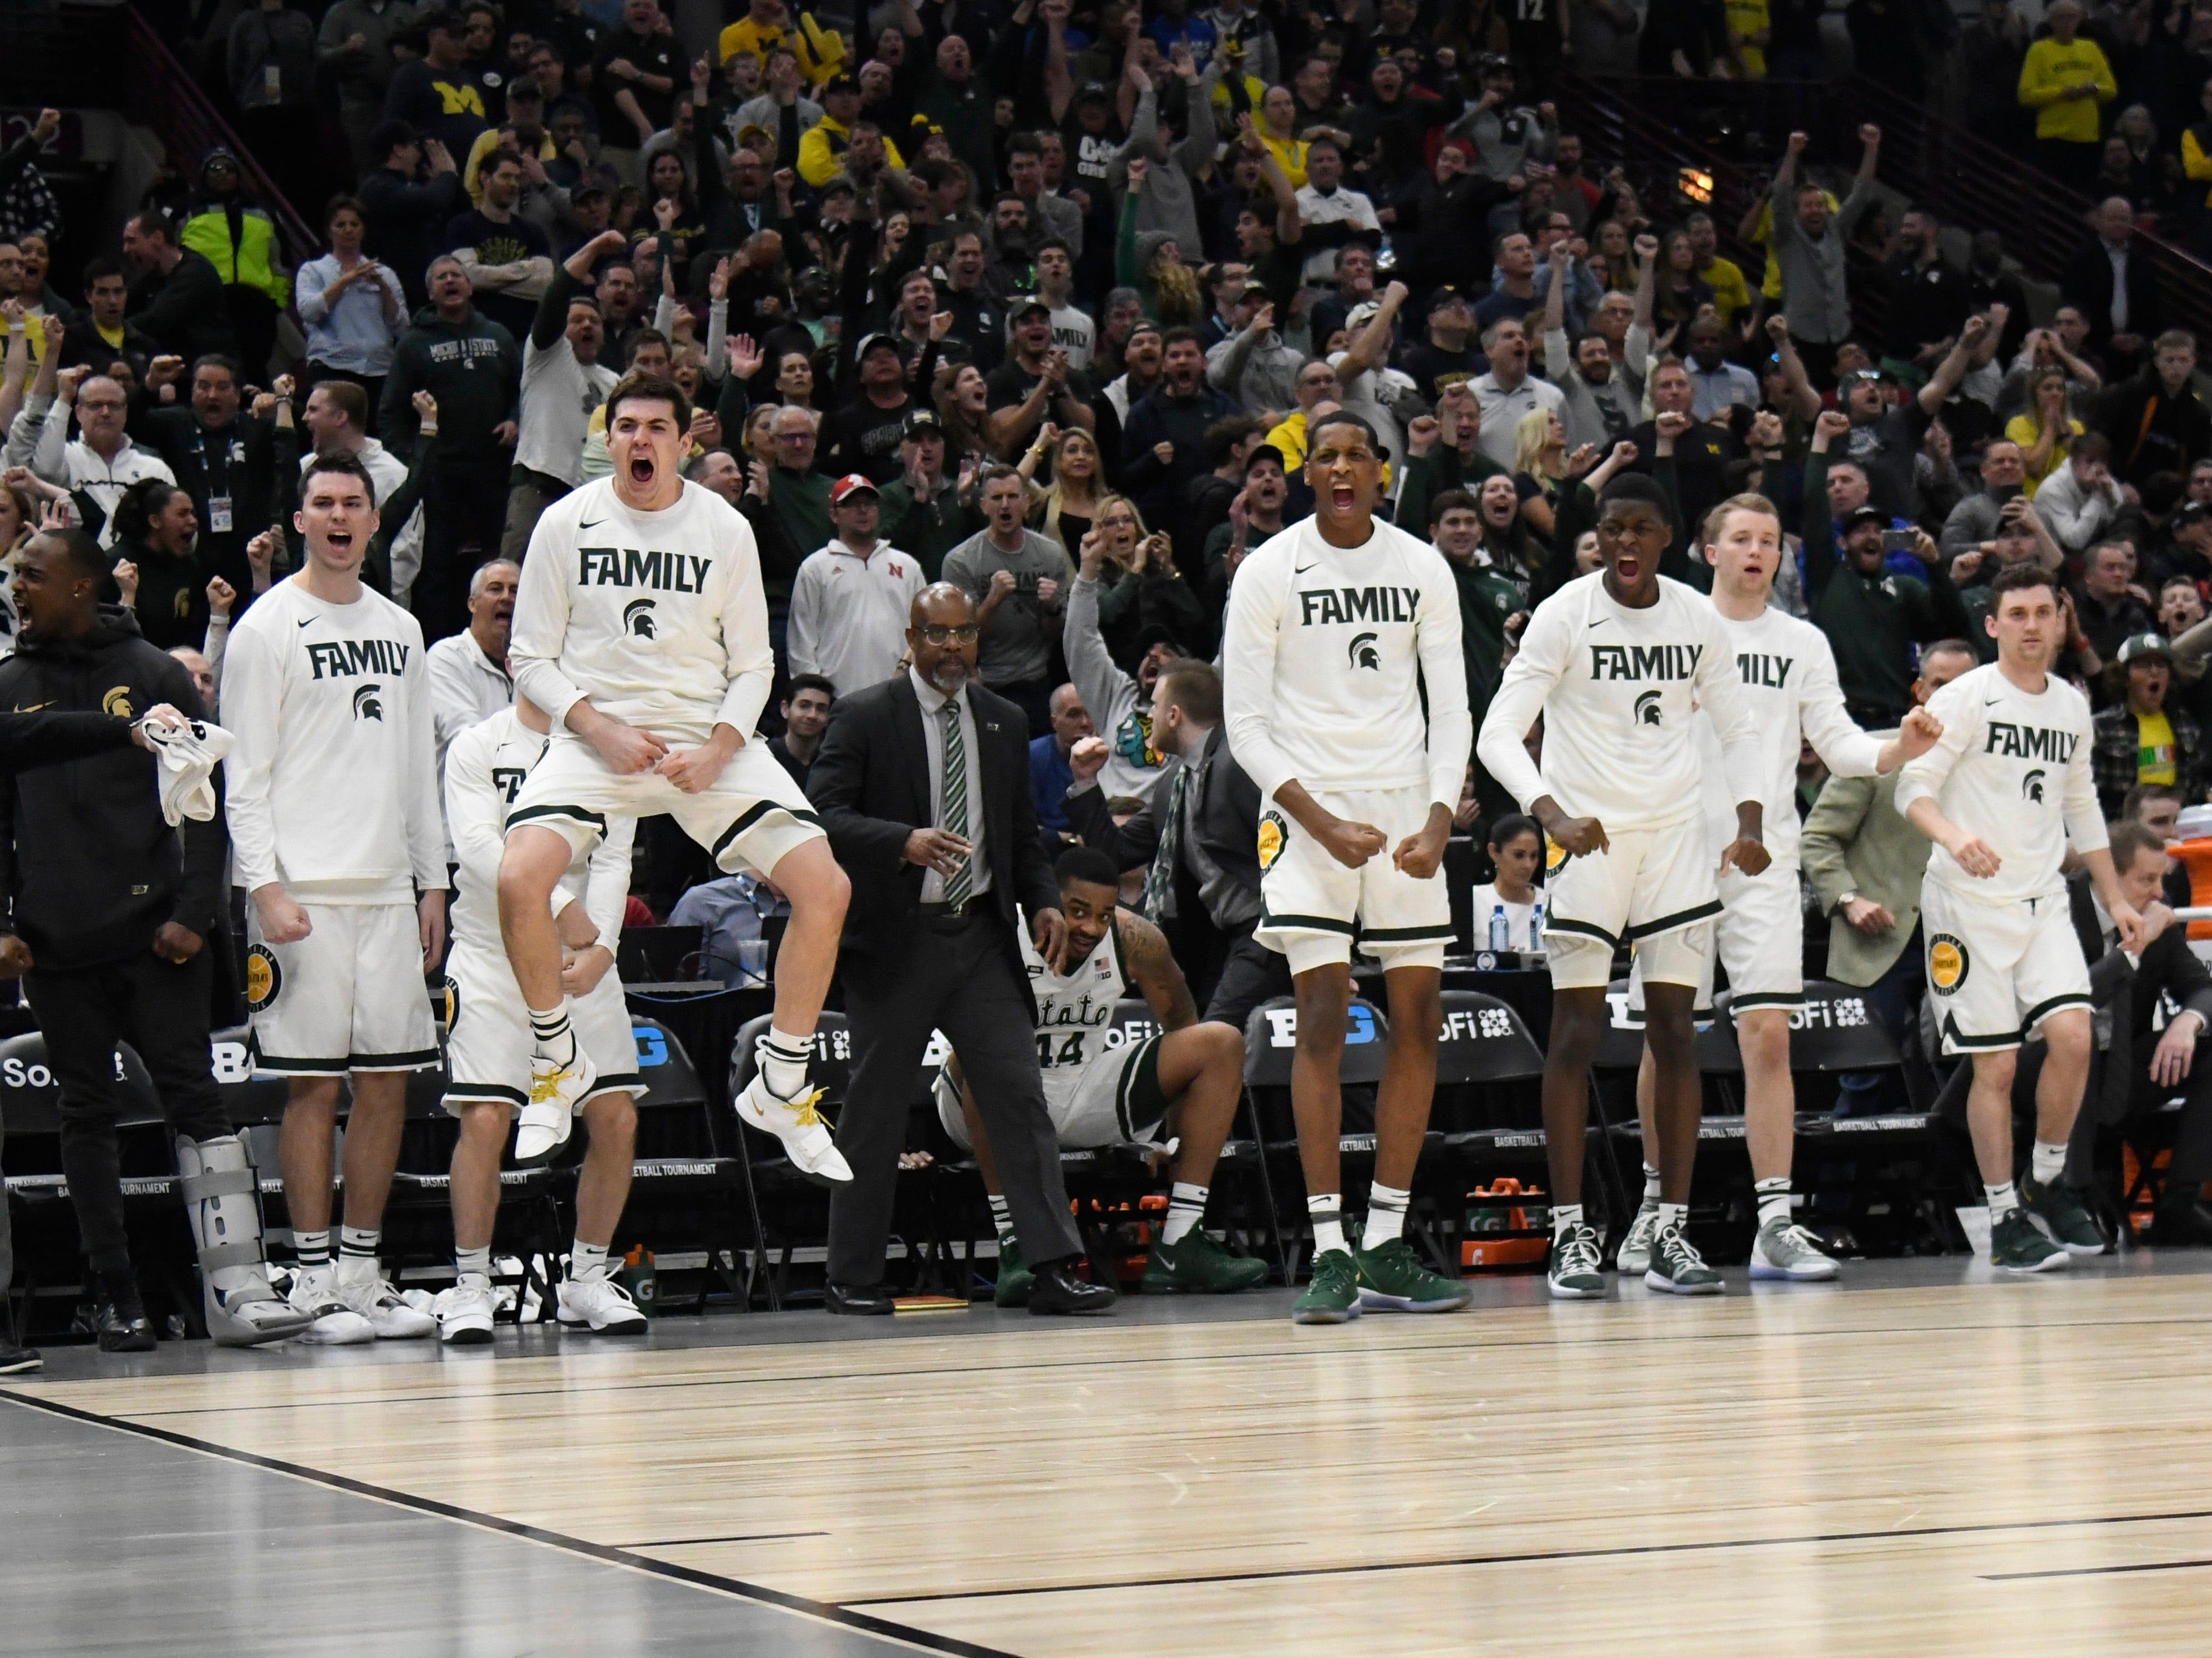 Mar 17, 2019; Chicago, IL, USA; The Michigan State Spartans bench celebrate a basket against the Michigan Wolverines during the second half in the Big Ten conference tournament at United Center. Mandatory Credit: David Banks-USA TODAY Sports